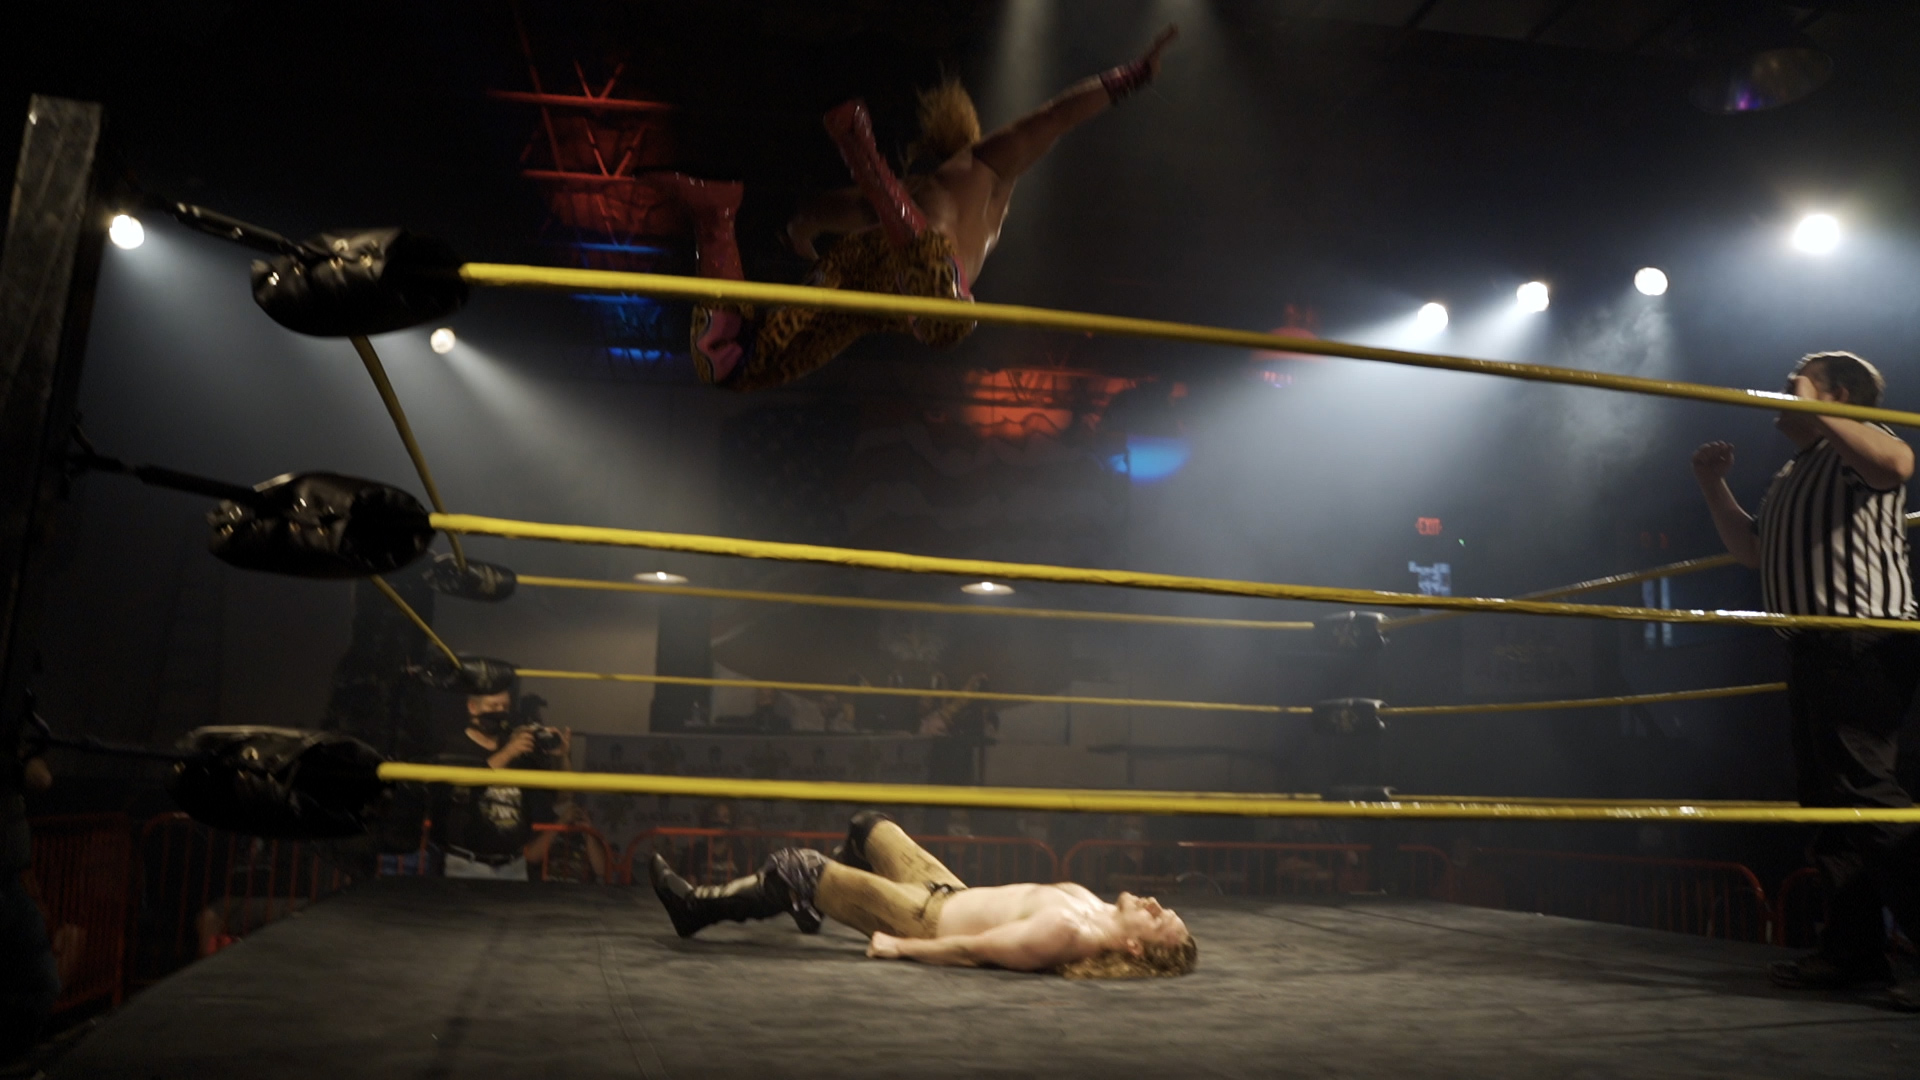 OVW Short Documentary; My Rode Reel 2020 Submission